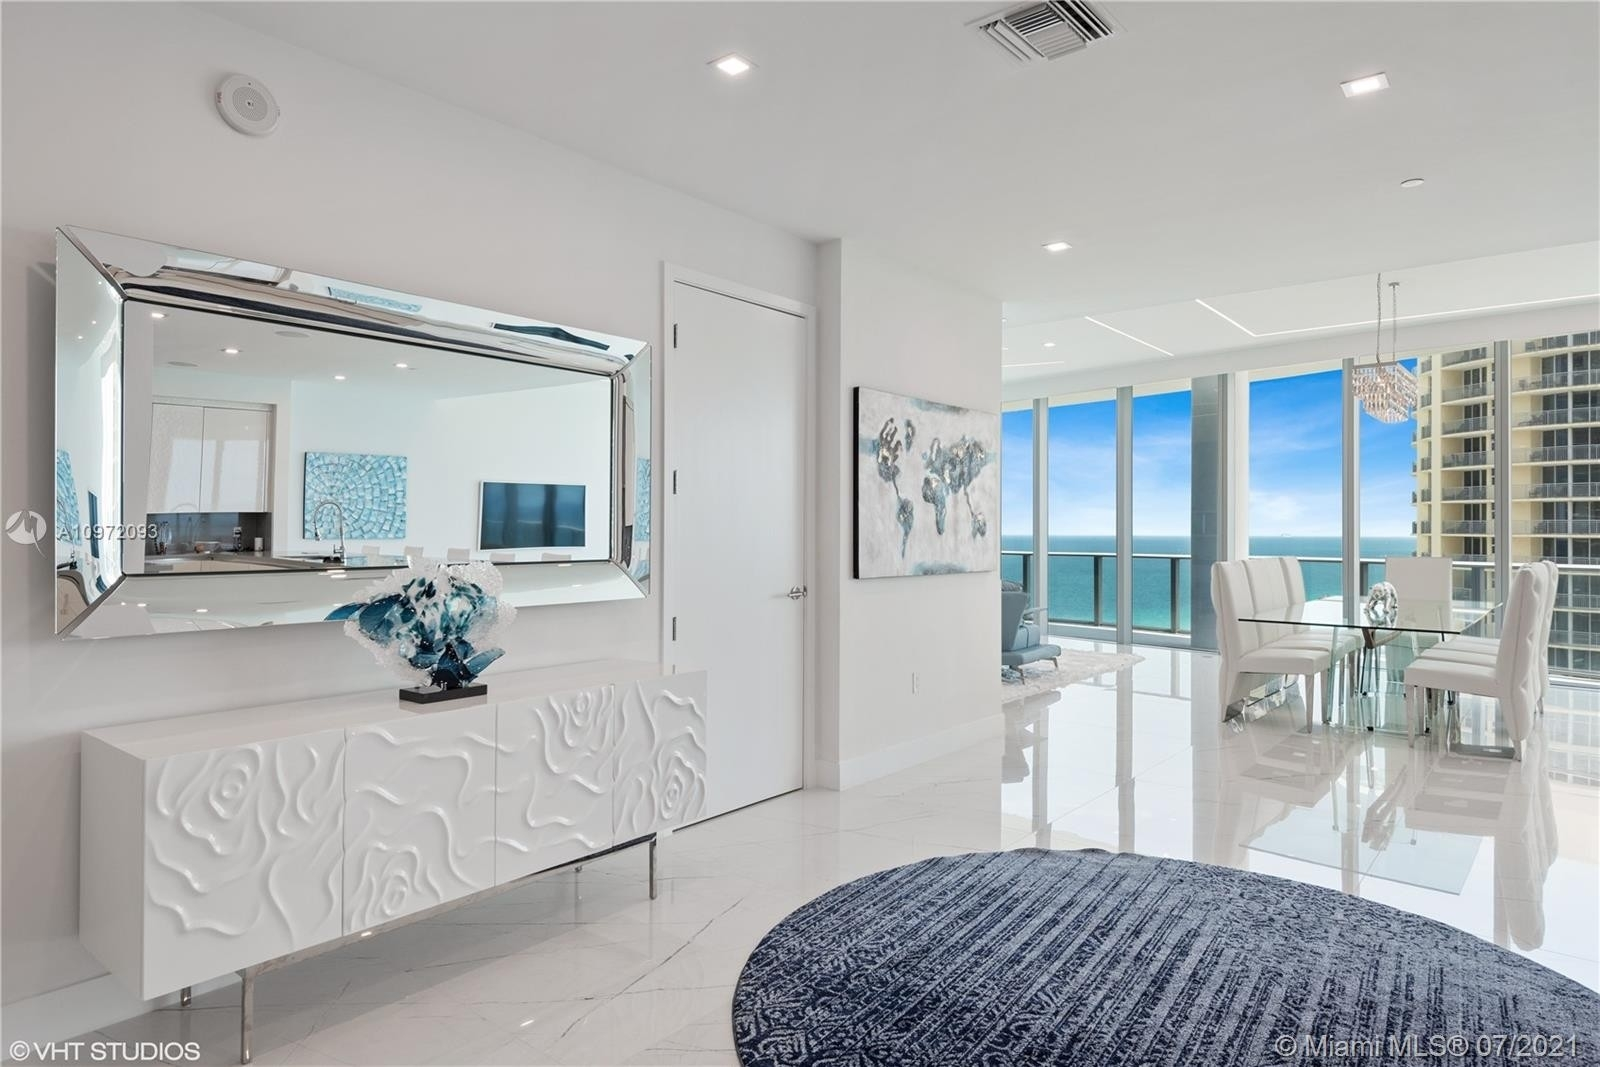 4. Condominiums for Sale at 17475 Collins Ave , 1501 Sunny Isles Beach, FL 33160